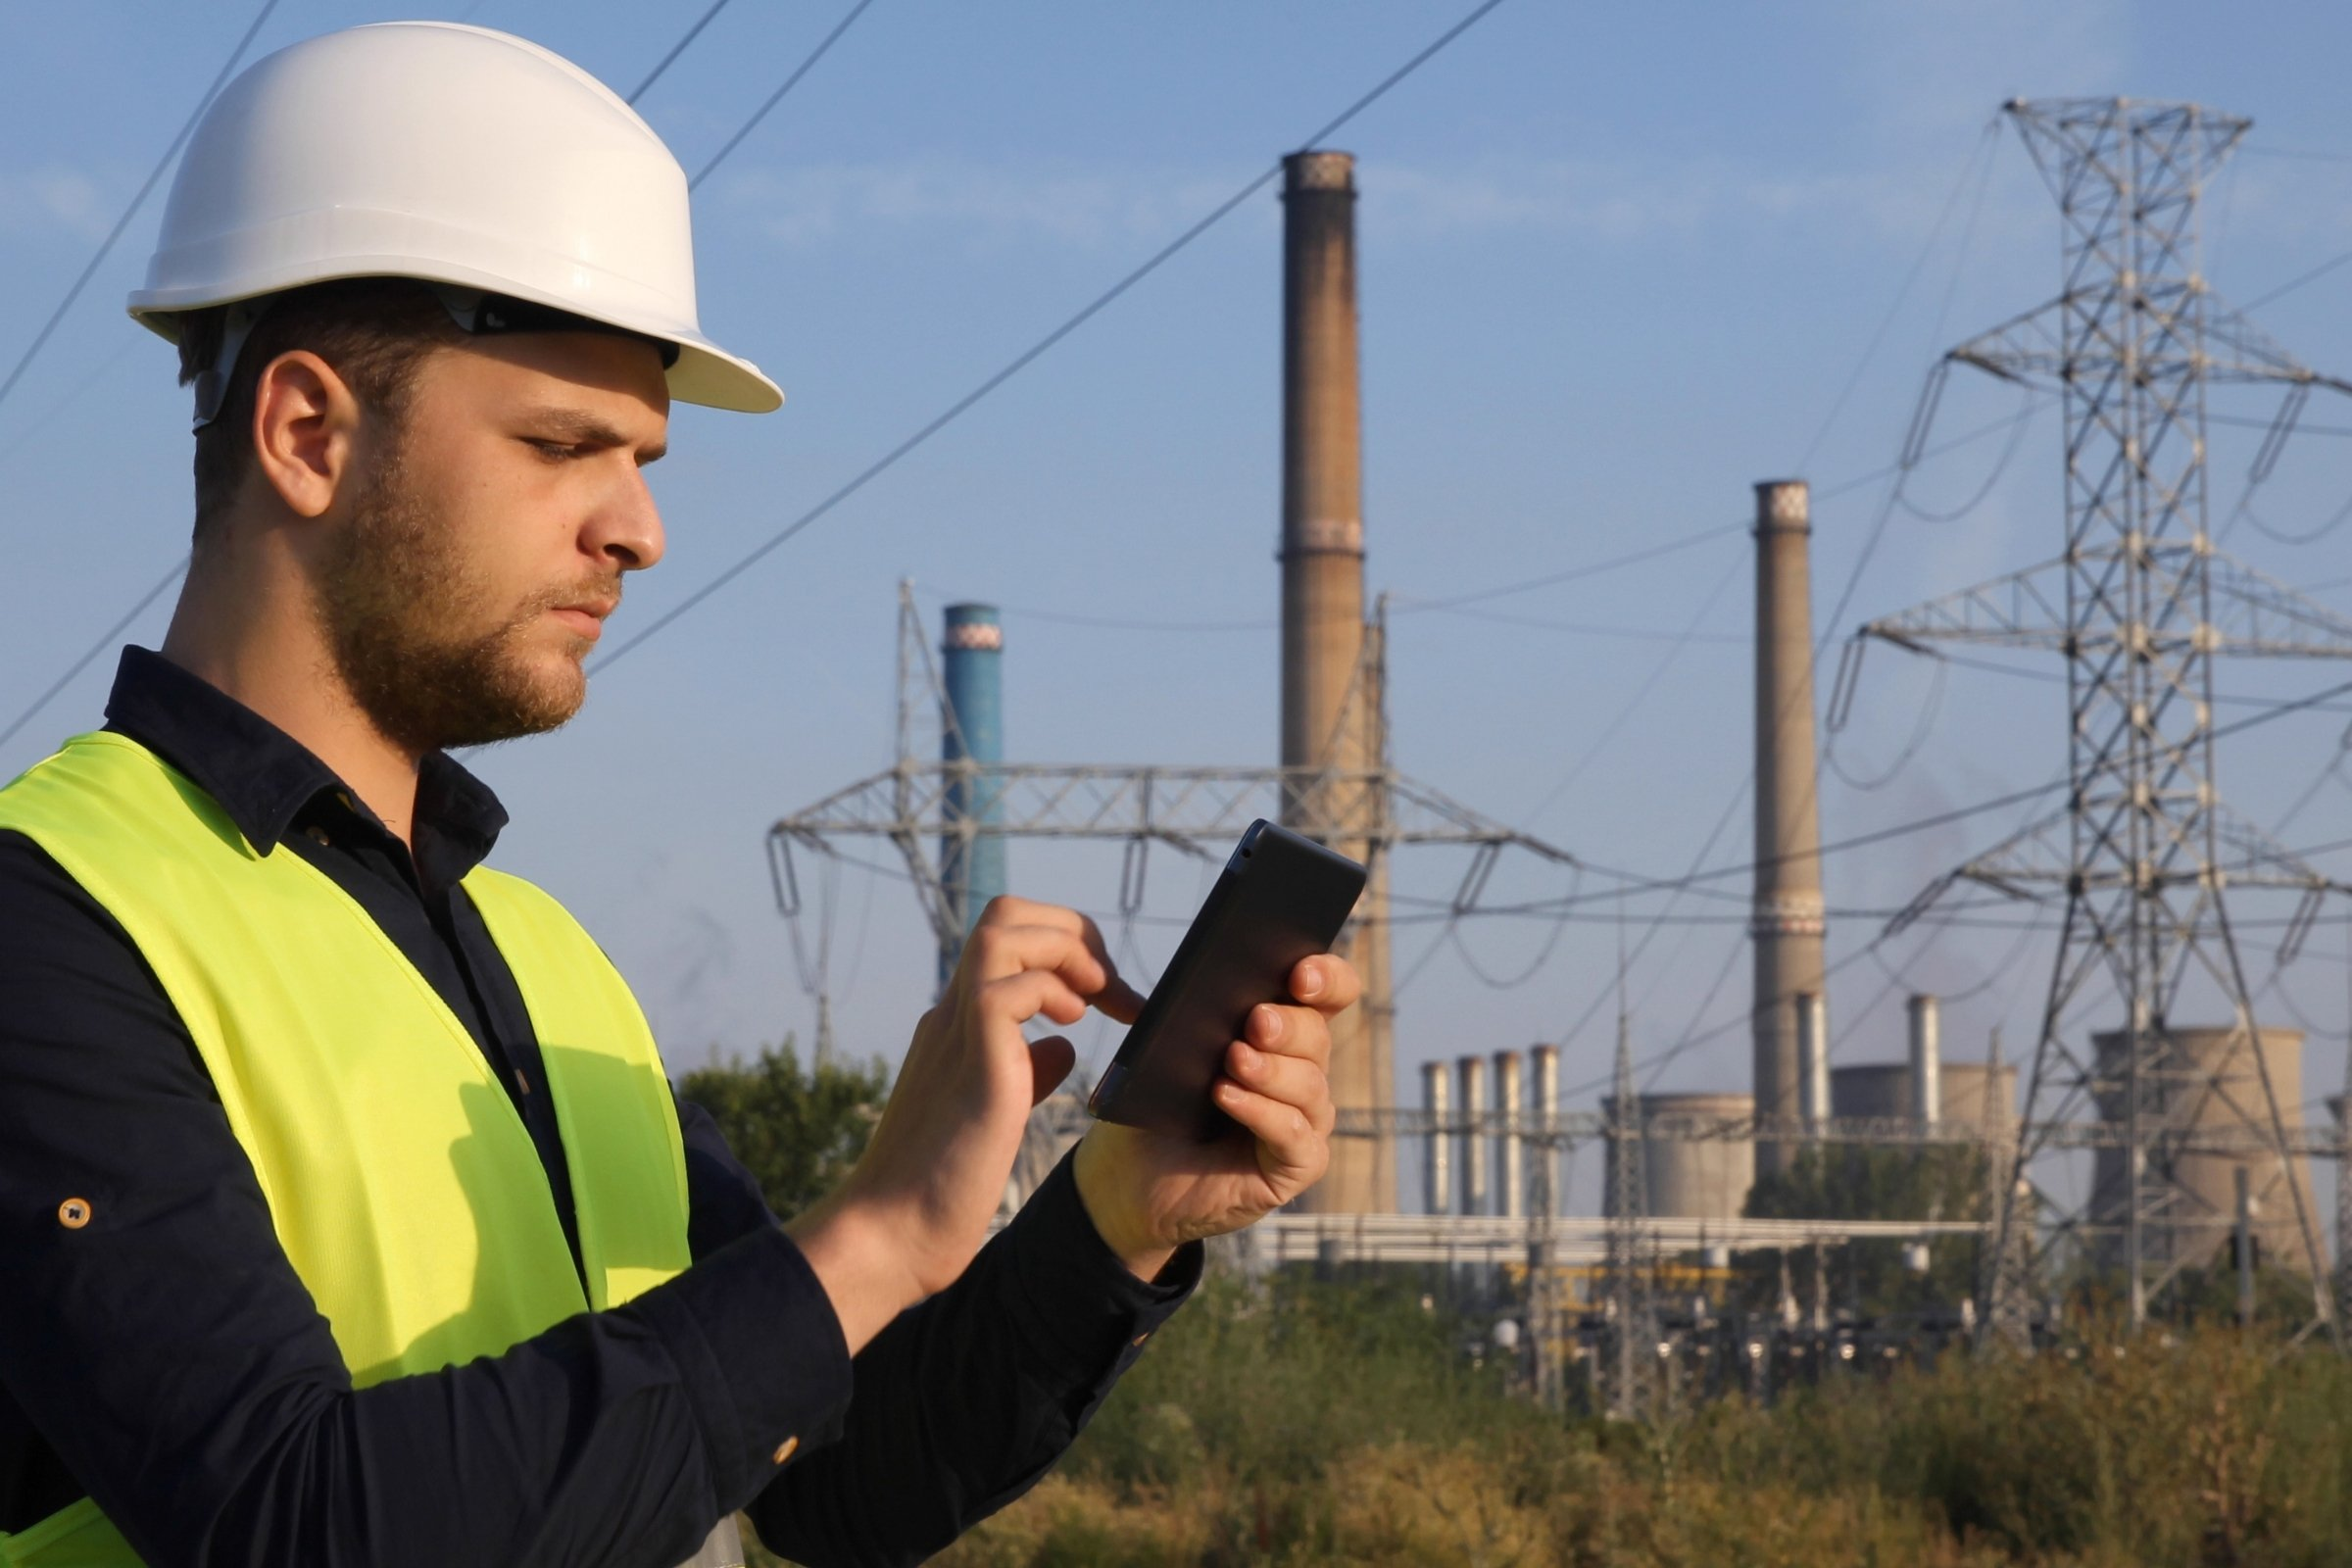 Photo of a man in a hard hat and high vis vest entering information on his phone with a power station in the background